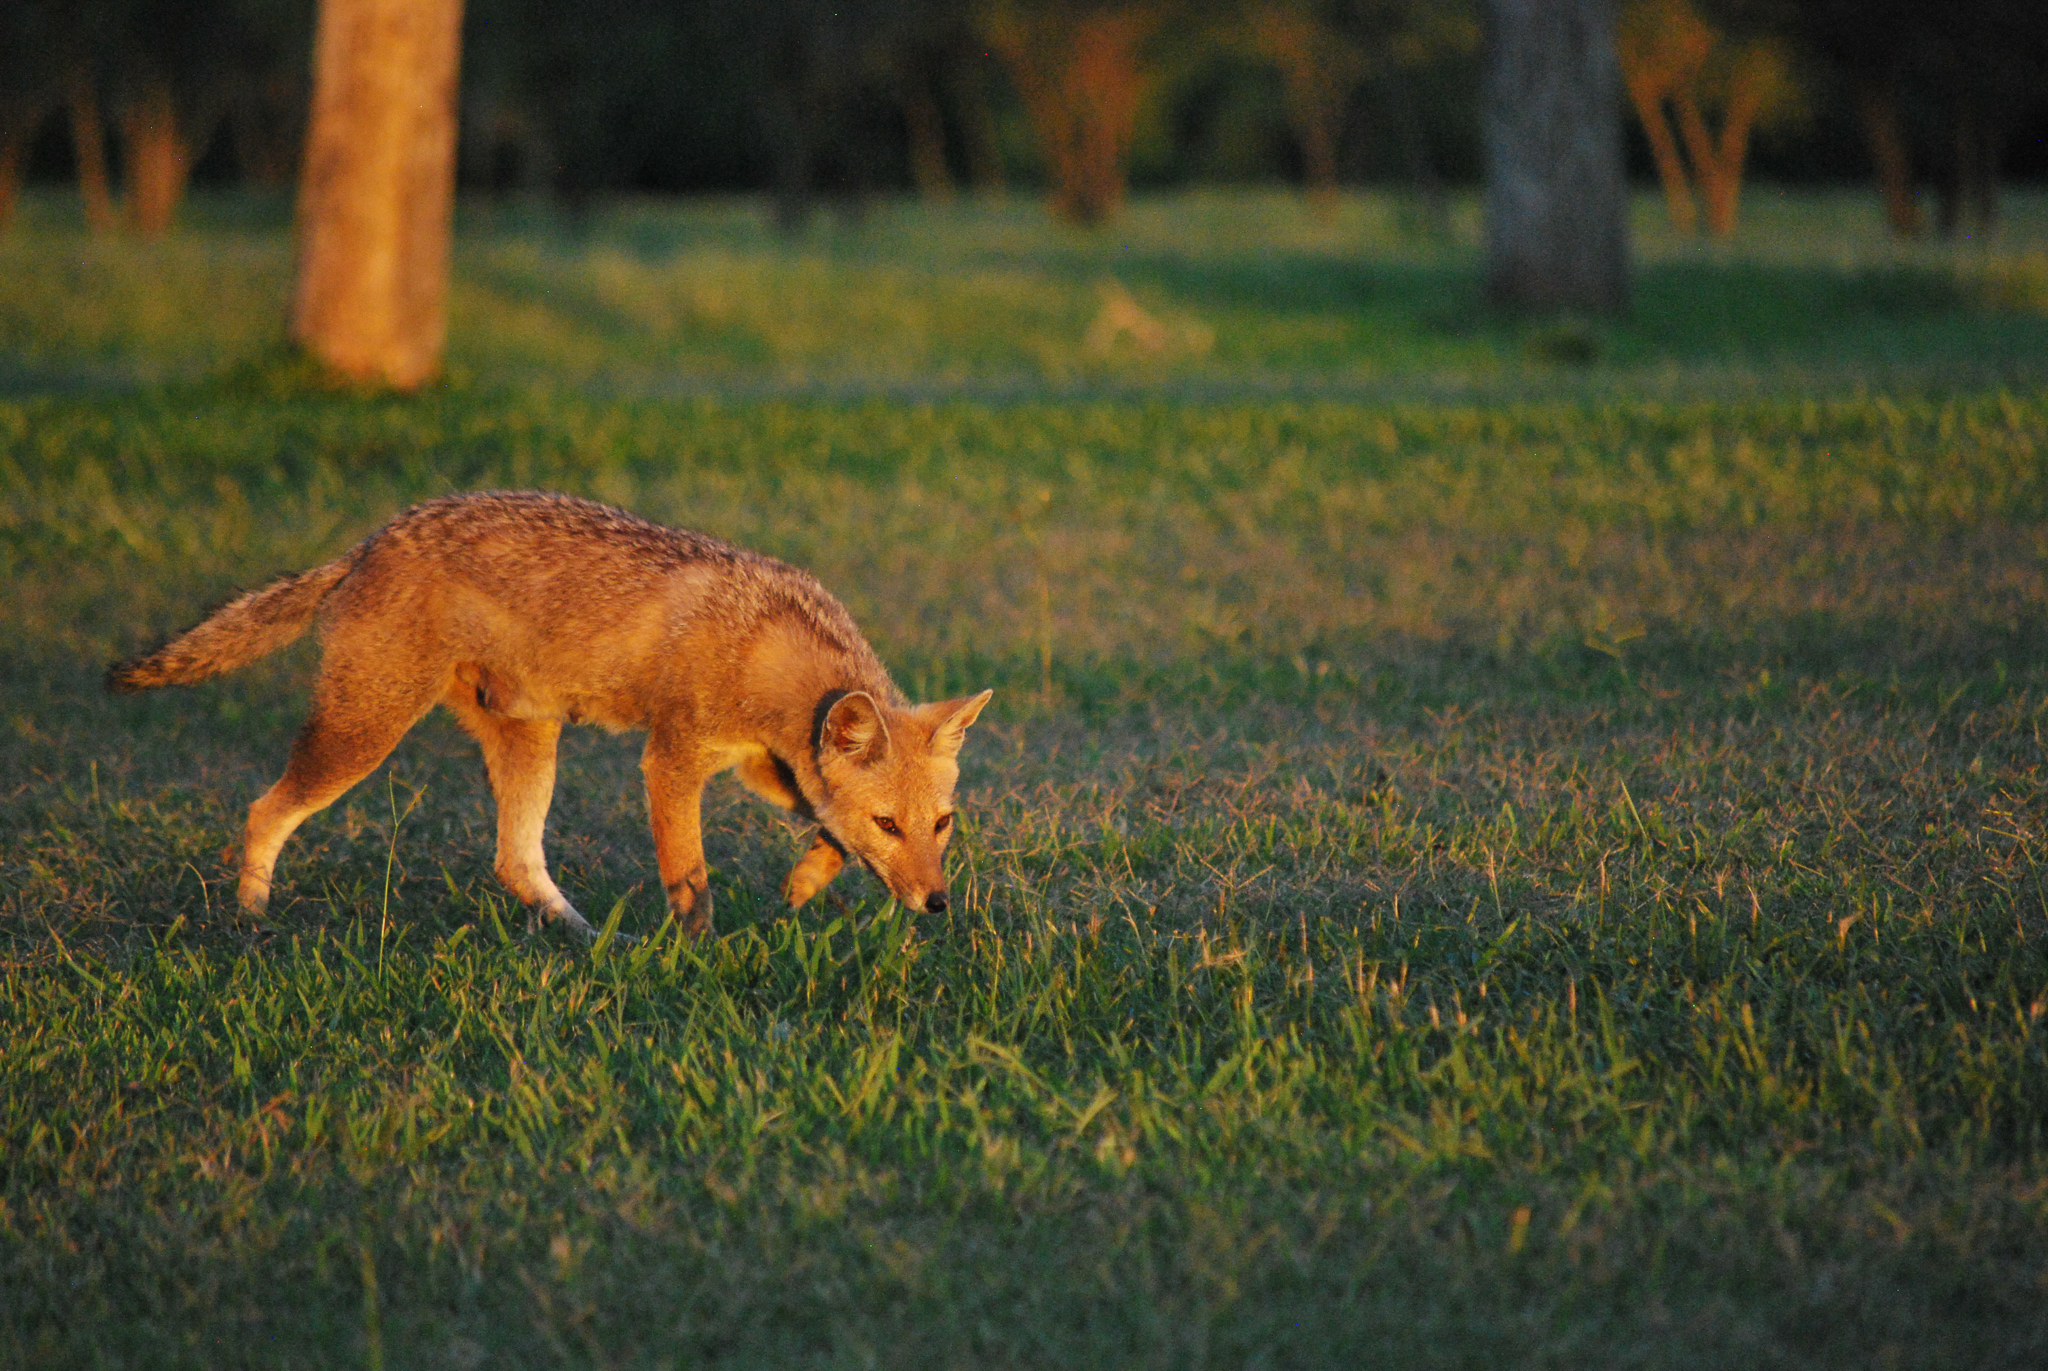 A gray fox in Iberá—Photo by Brooke Jarvis